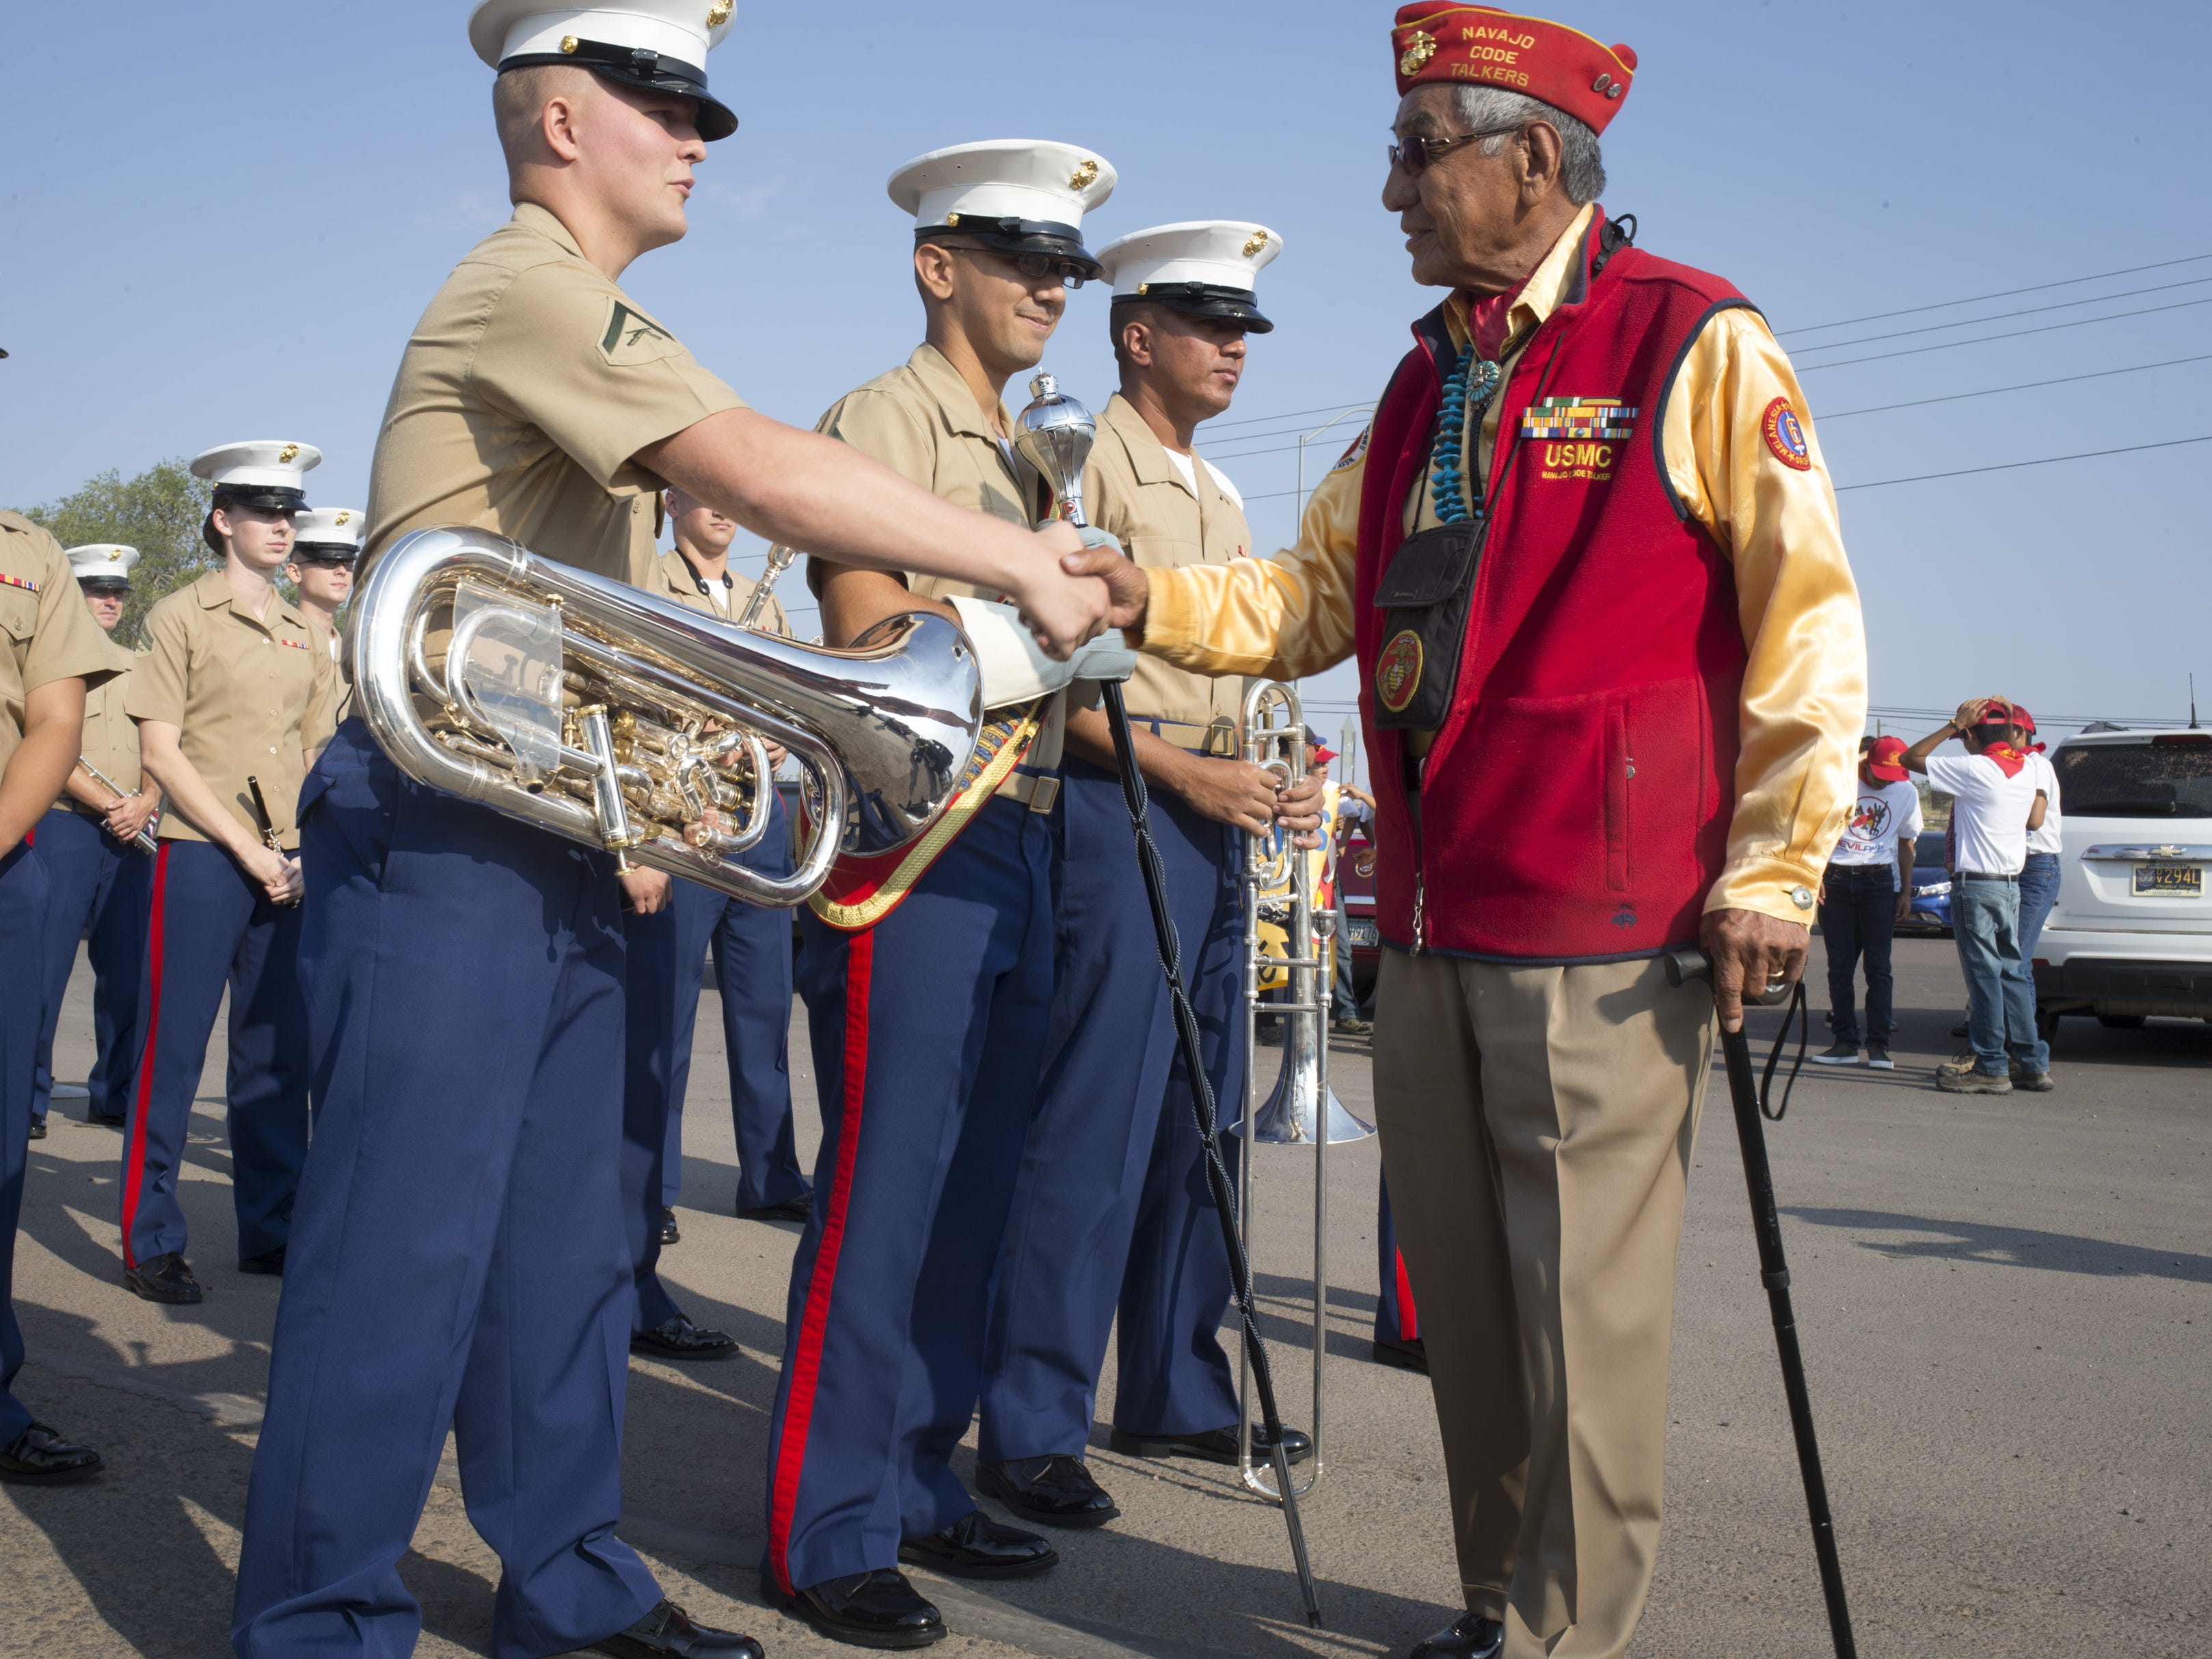 Navajo Code Talker Peter MacDonald greets members of the Marine Forces Reserve Band before the start of the Navajo Nation Code Talkers Day parade on Aug. 14, 2018, at the Navajo Nation Fairgrounds in Window Rock.